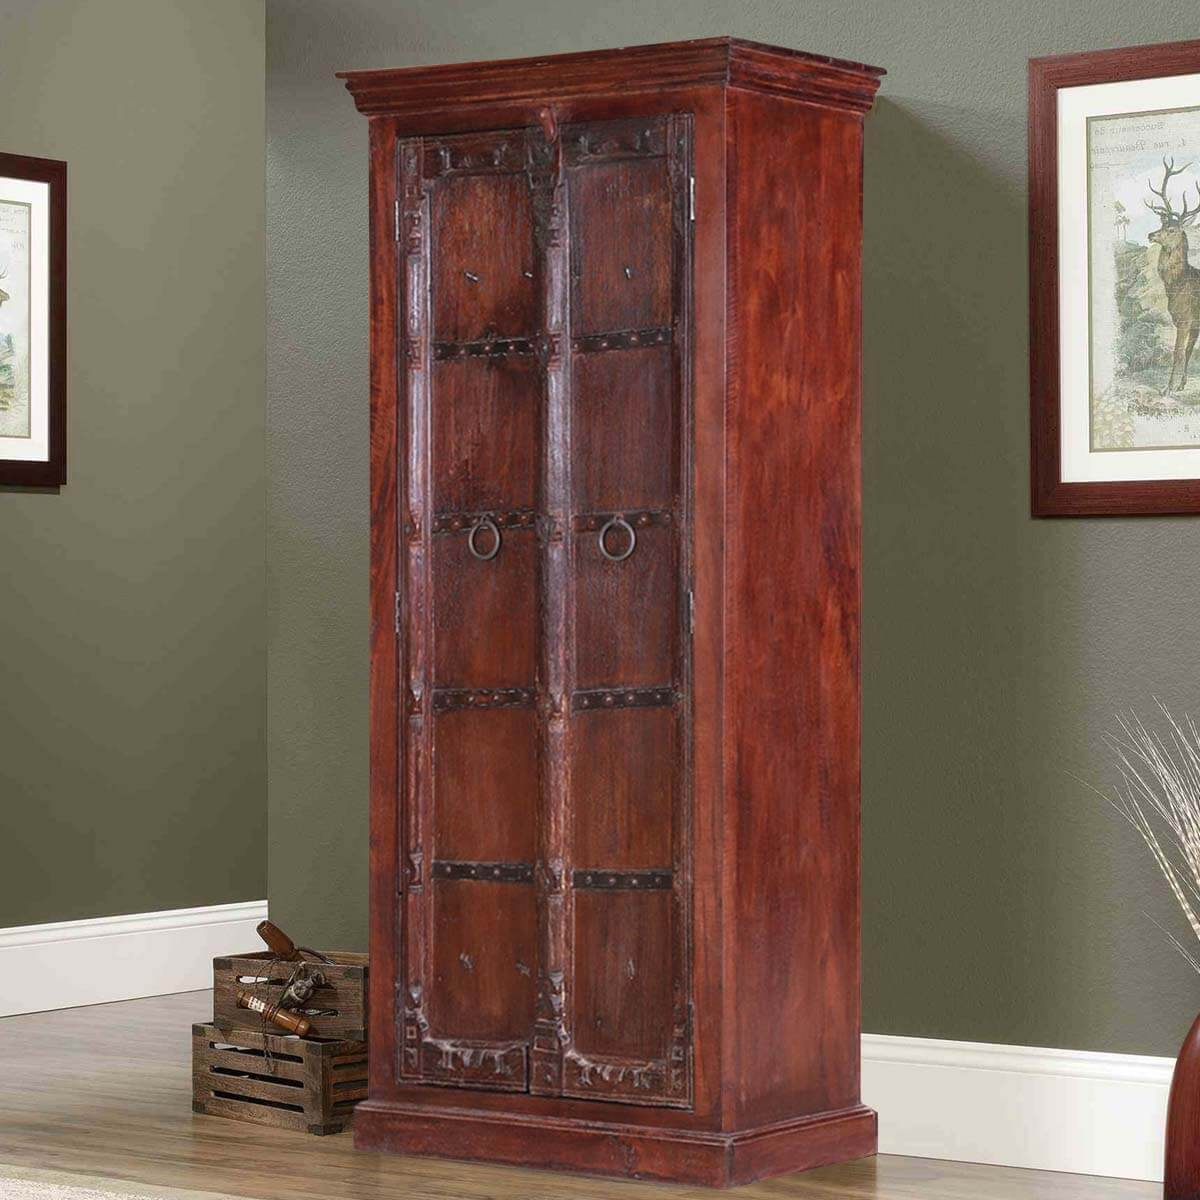 Erath Classic Handcrafted Reclaimed Wood Rustic Tall Armoire